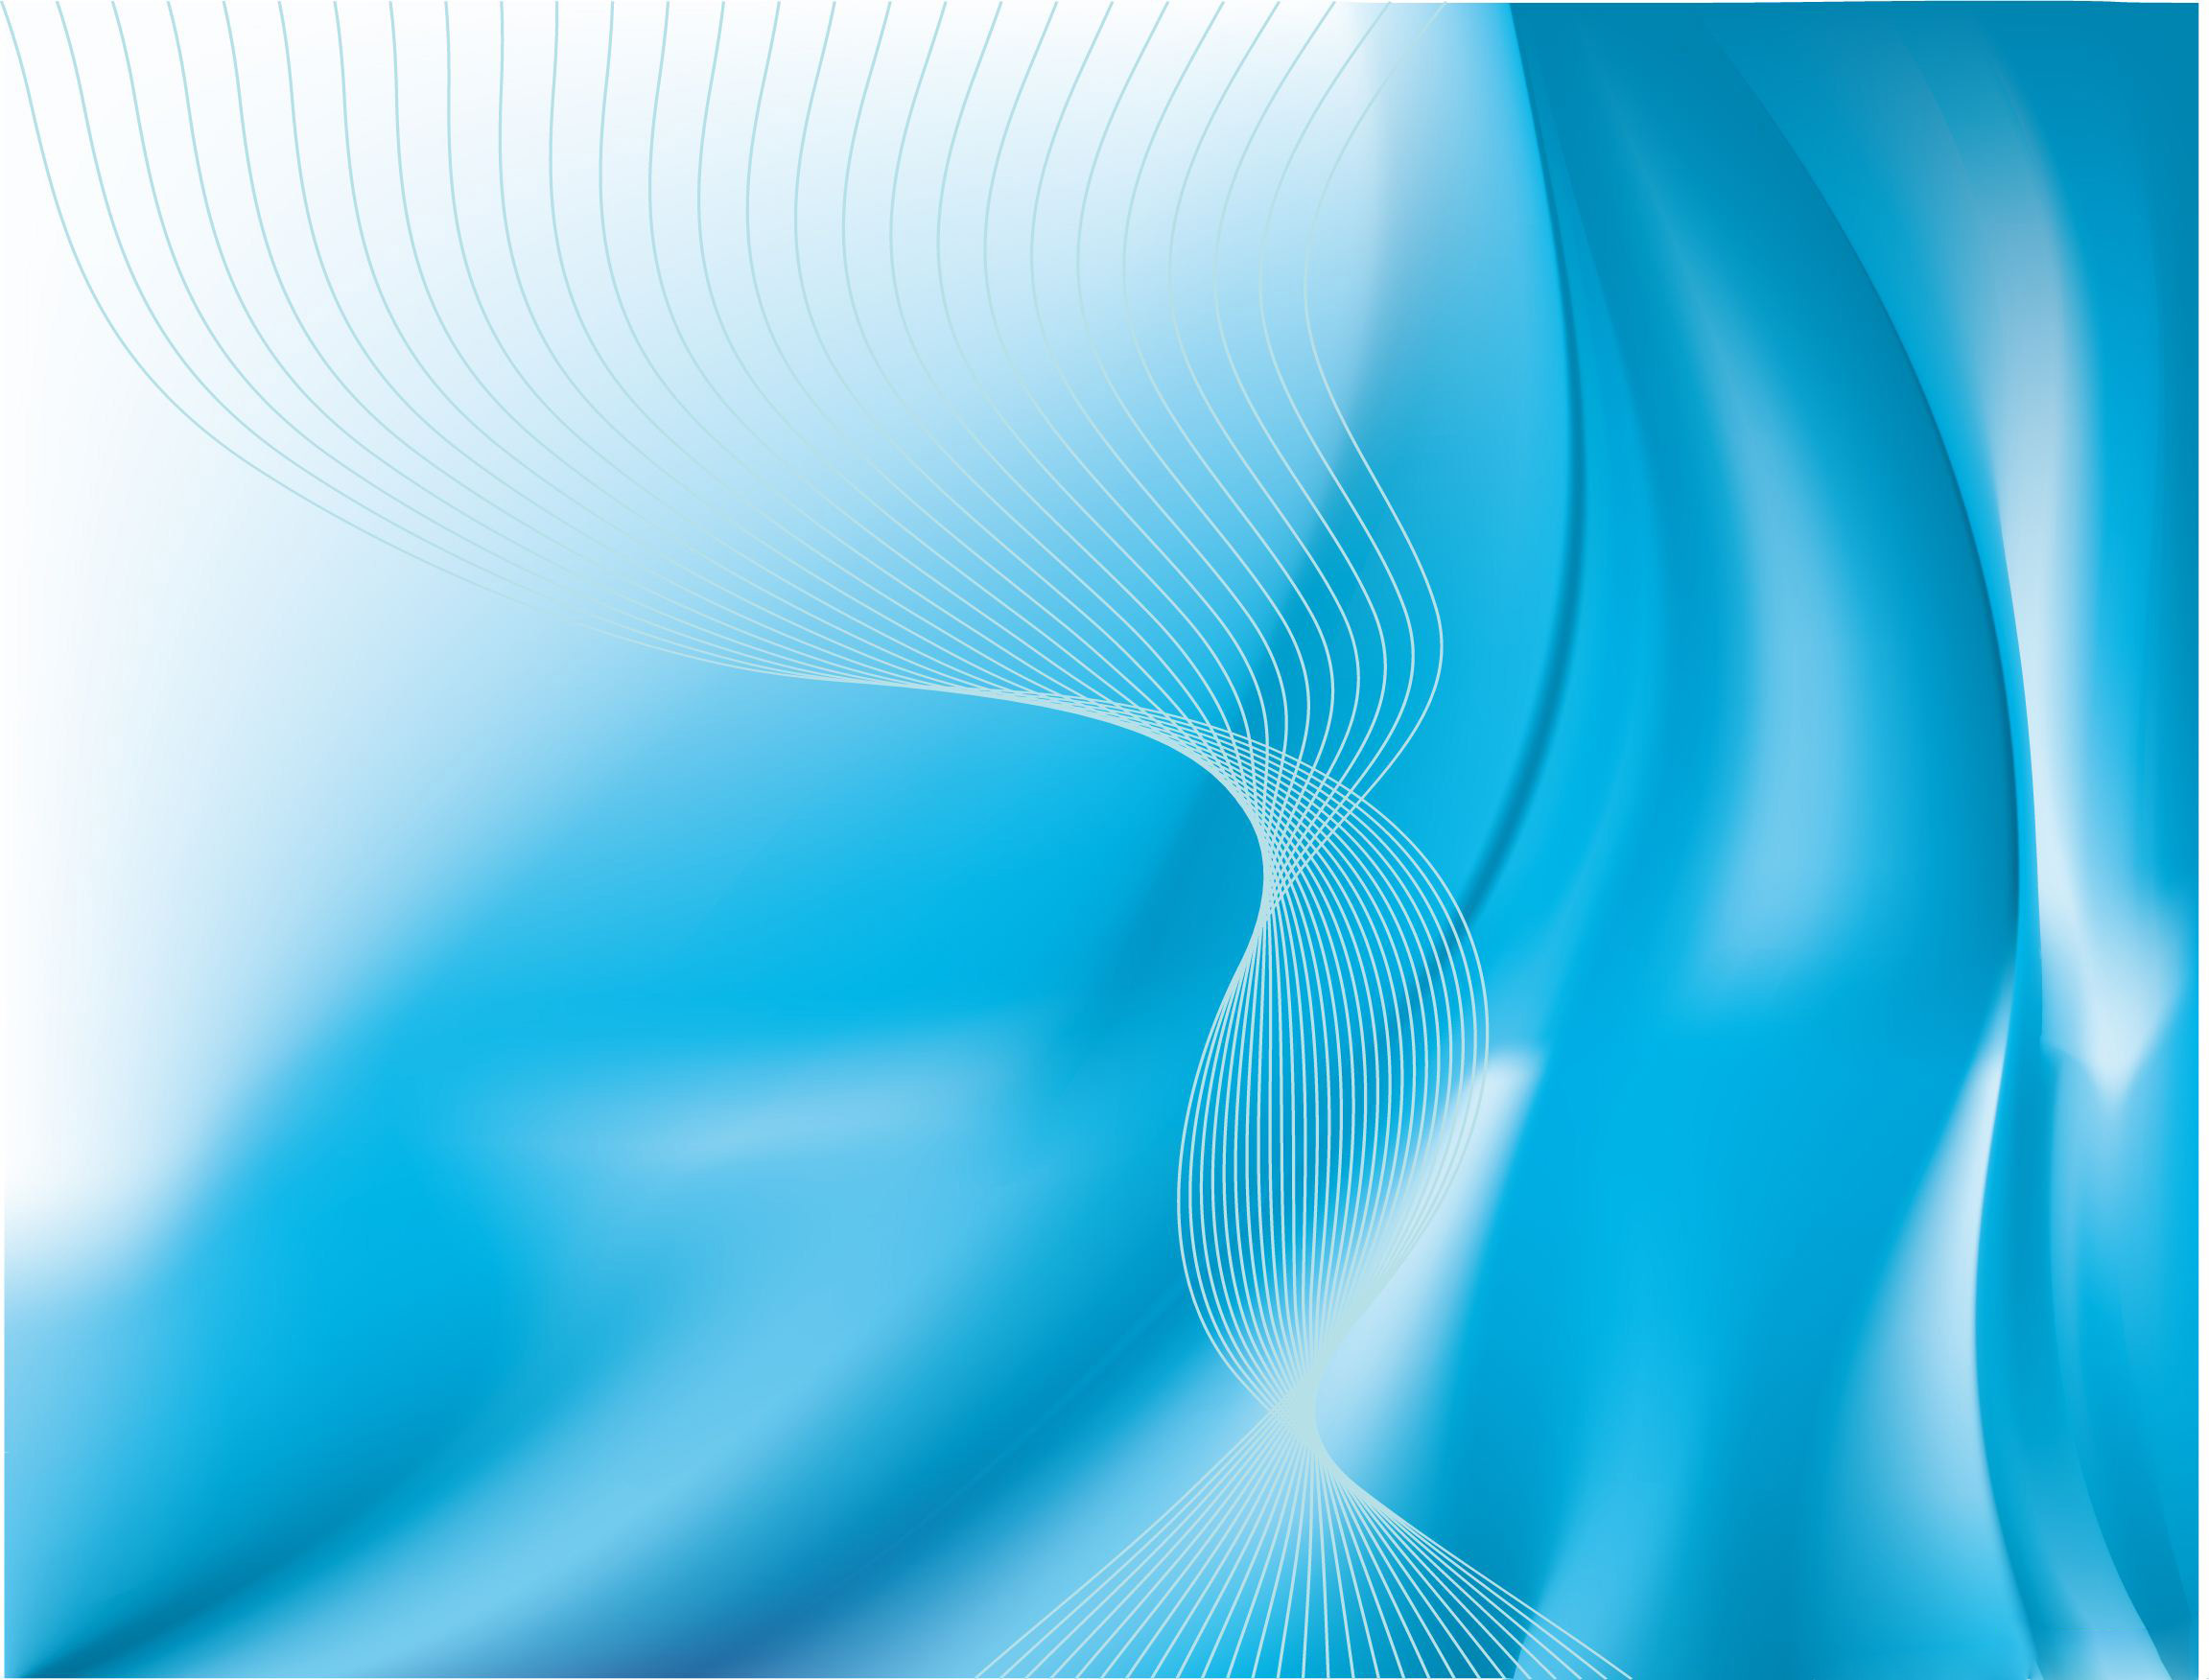 blue light texture light blue light background texture background 2303x1752